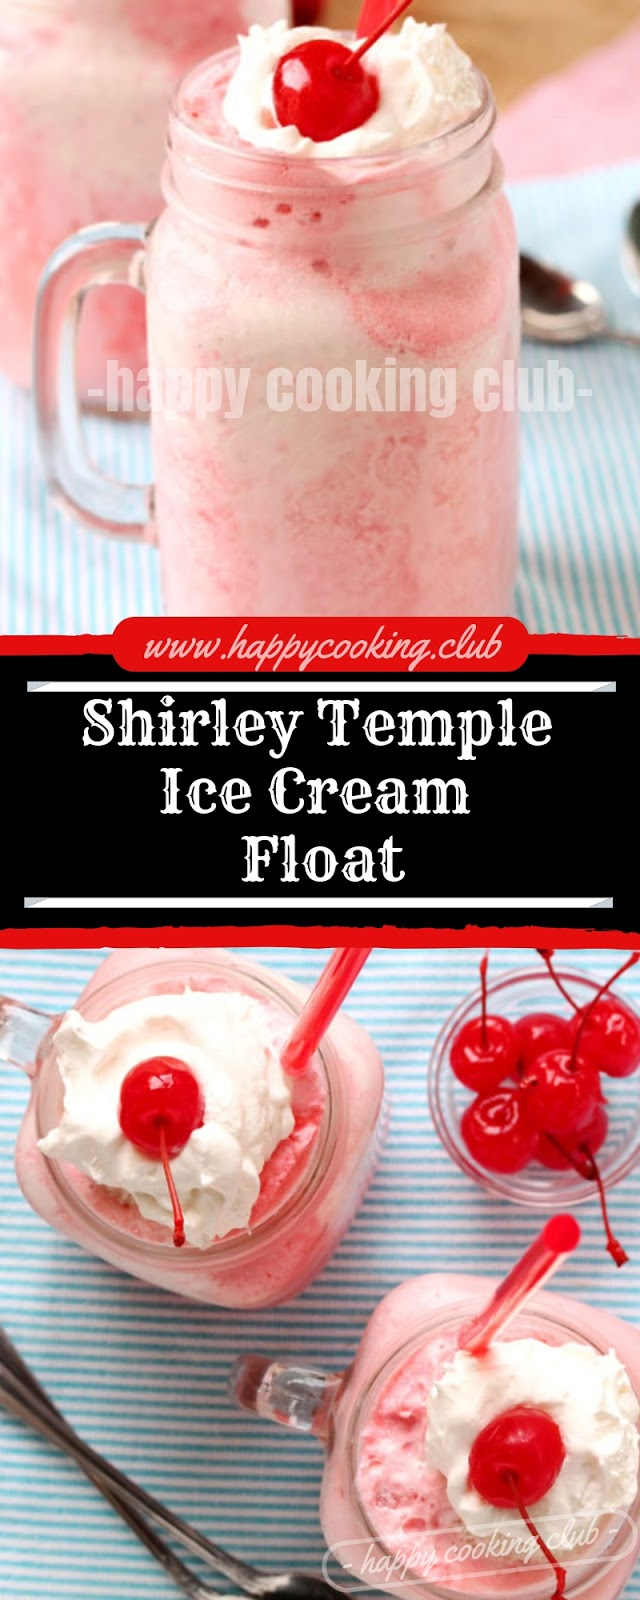 Shirley Temple Ice Cream Float